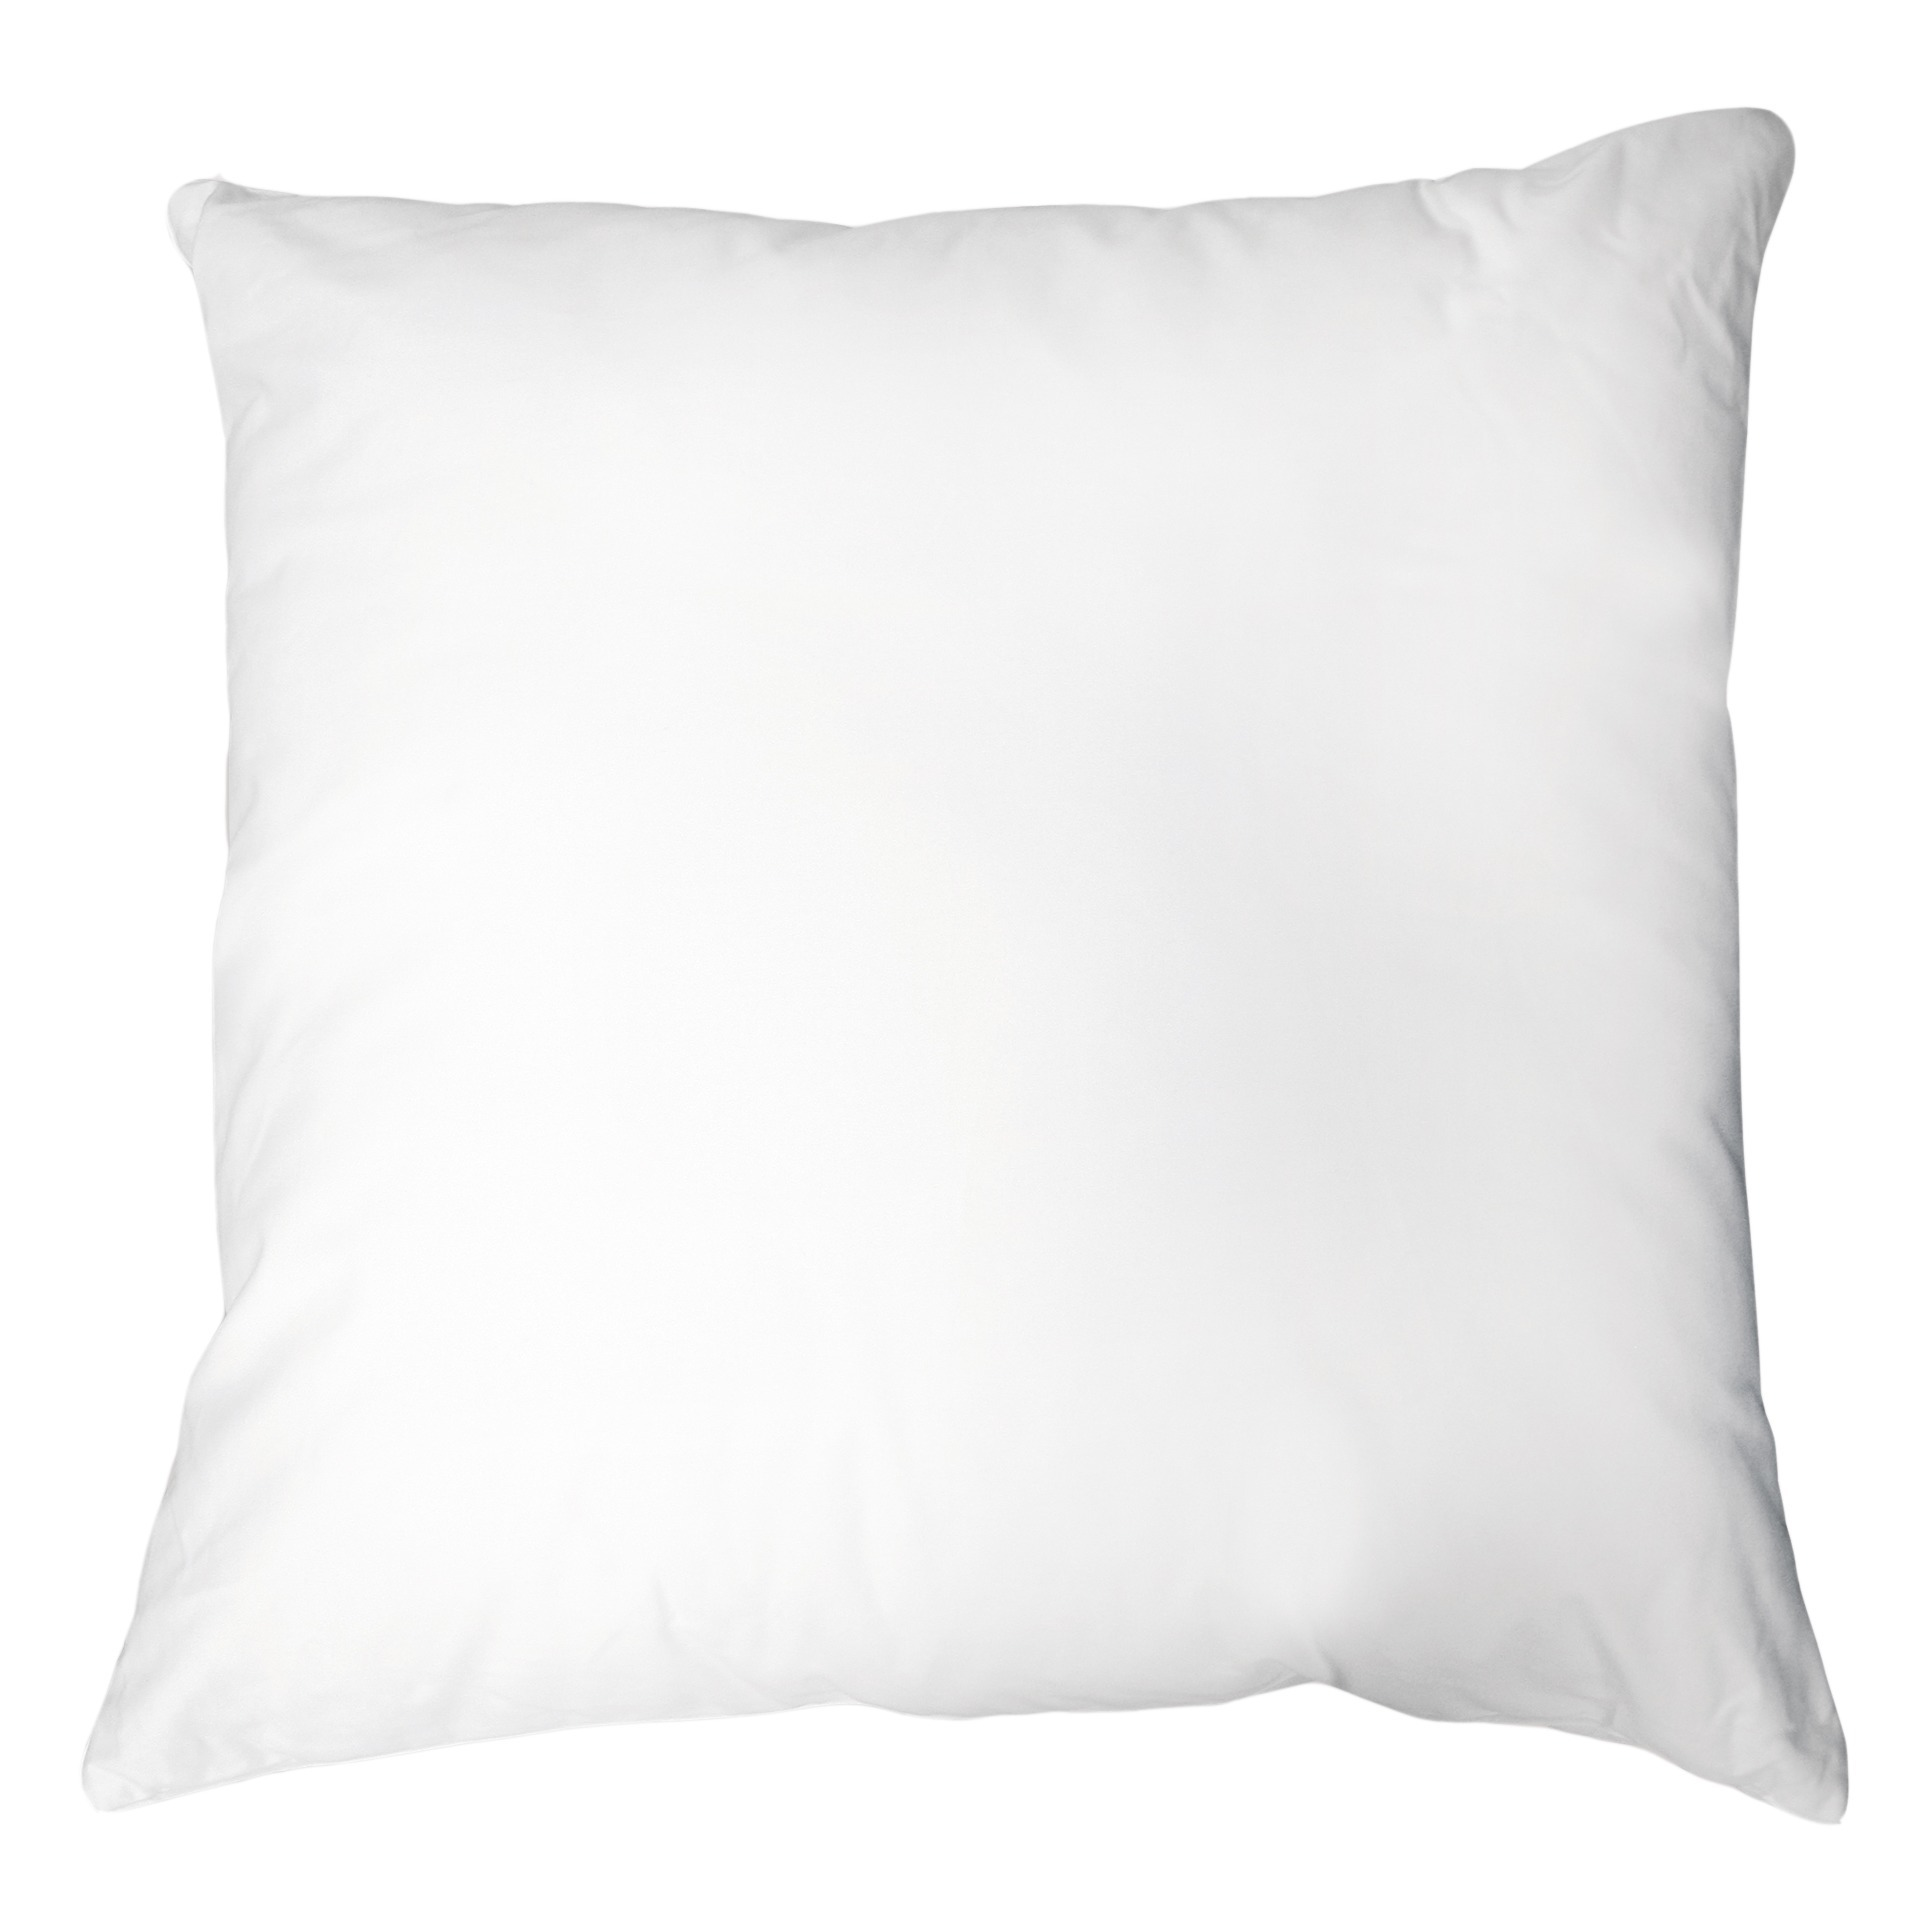 Bout d'chou Pillow White Dodo Design